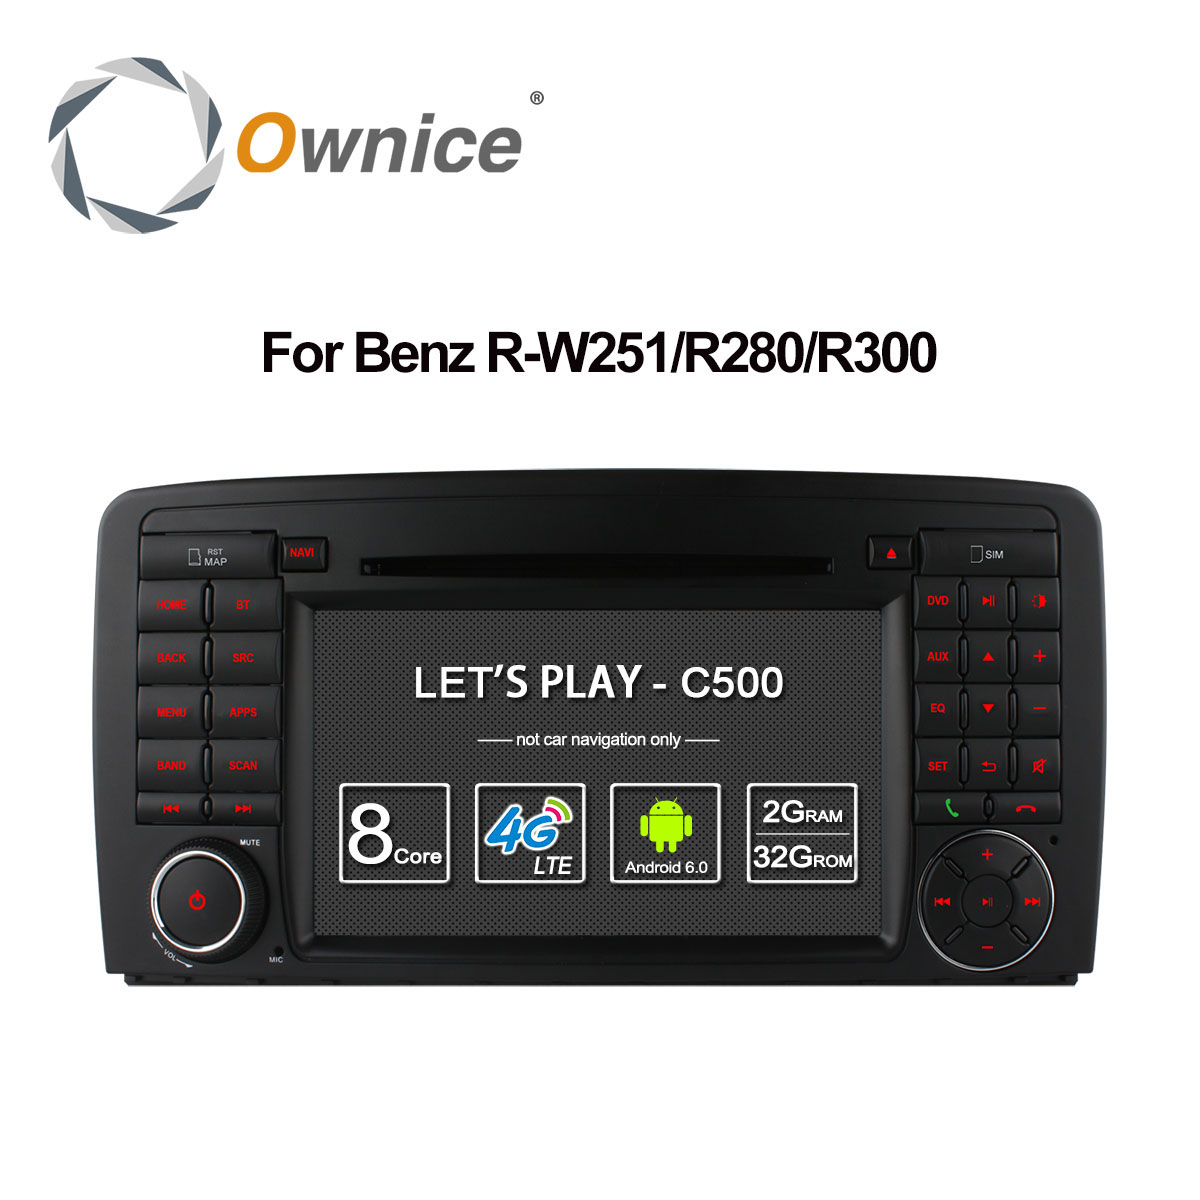 Ownice 4g sim lte 8 core android 6 0 car dvd player for mercedes r class w251